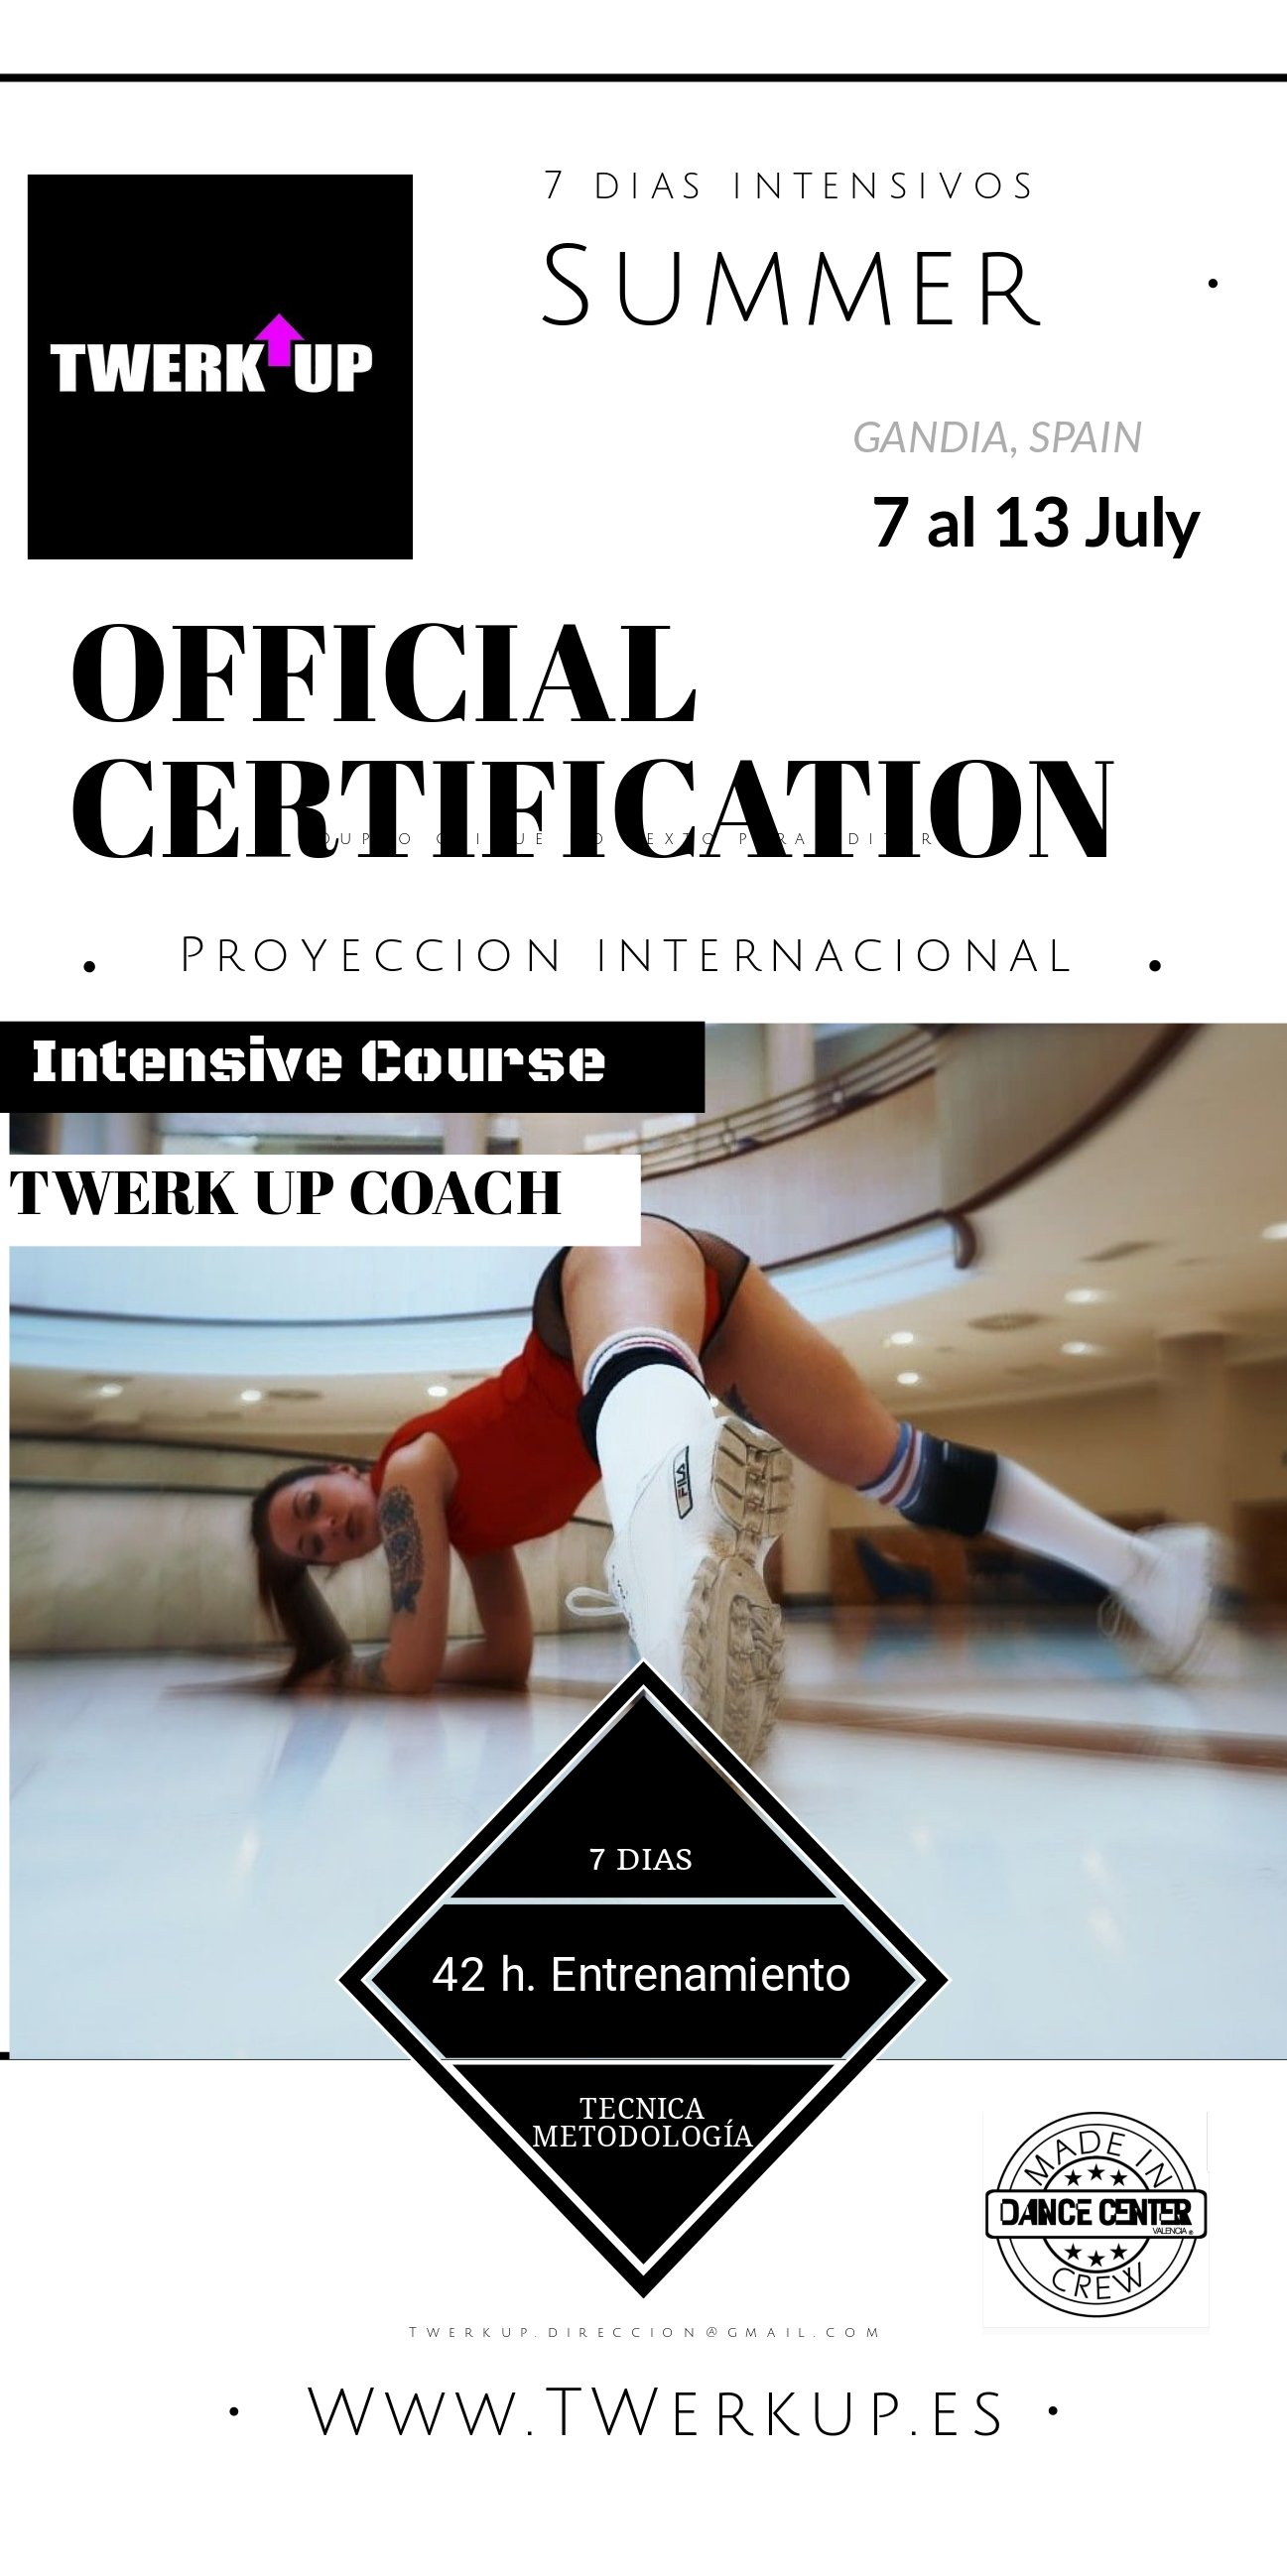 Official Certification